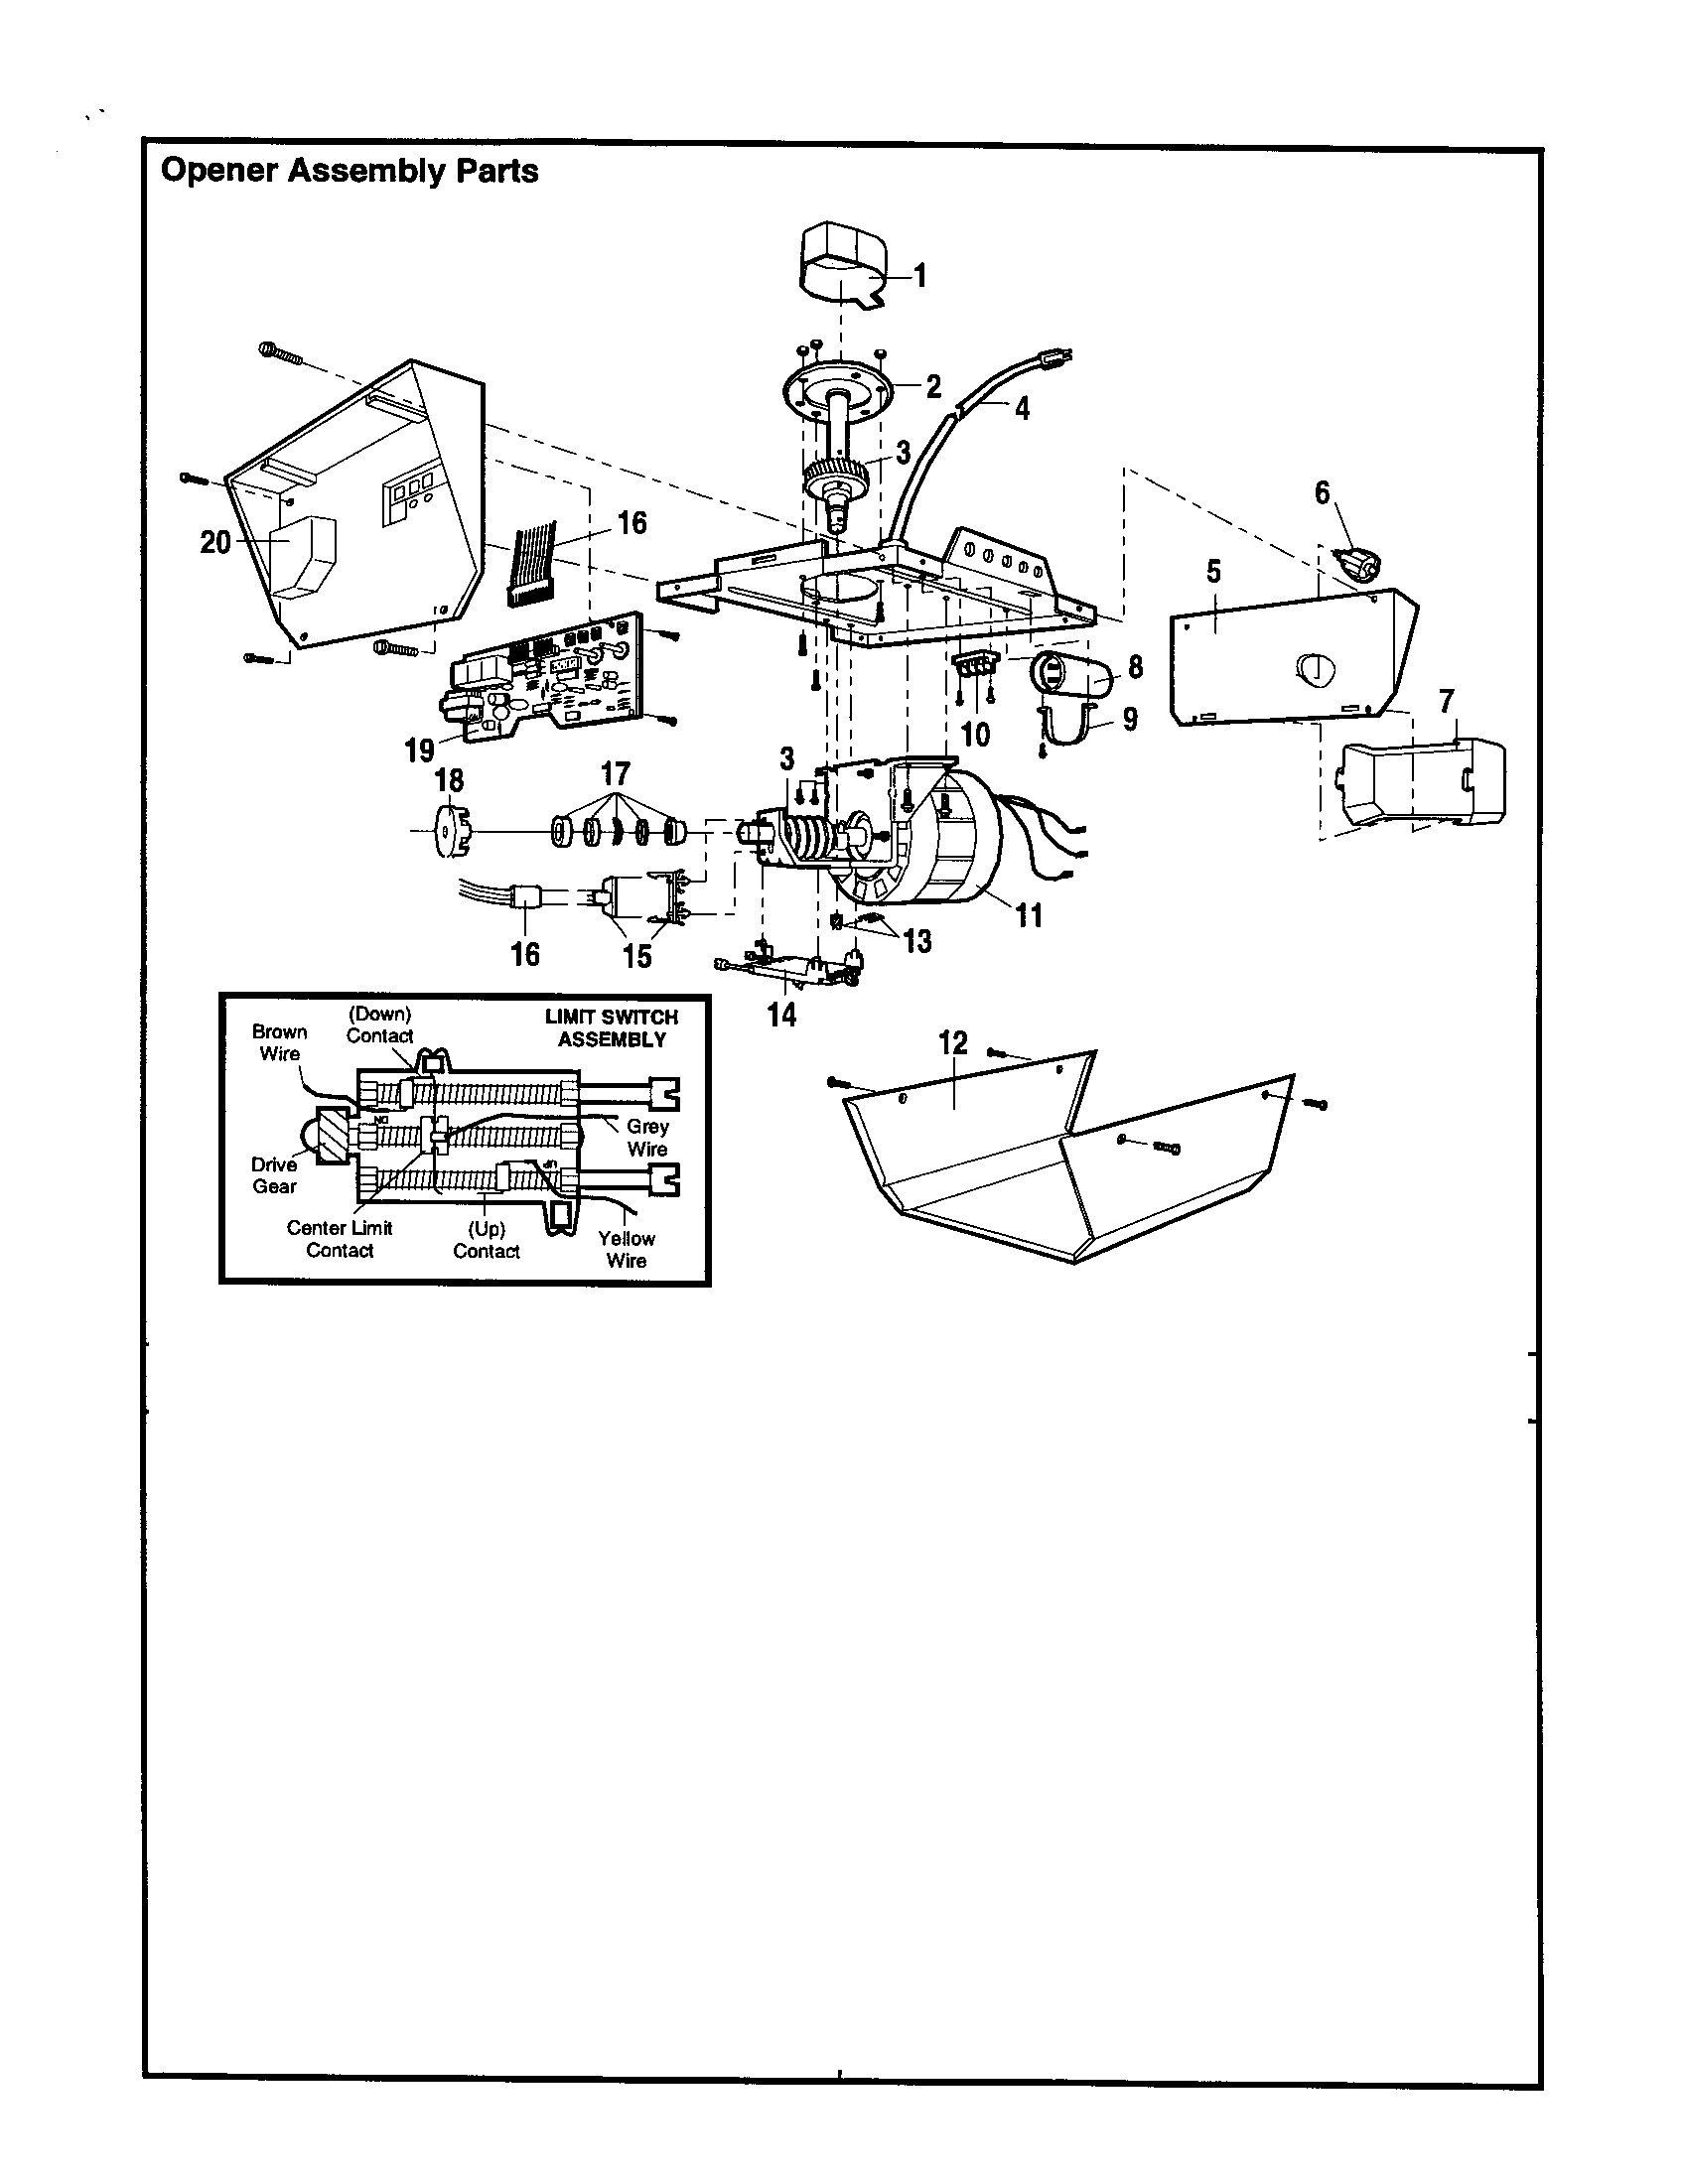 stanley garage door opener diagram craftsman garage door opener wiring diagram | free wiring ...